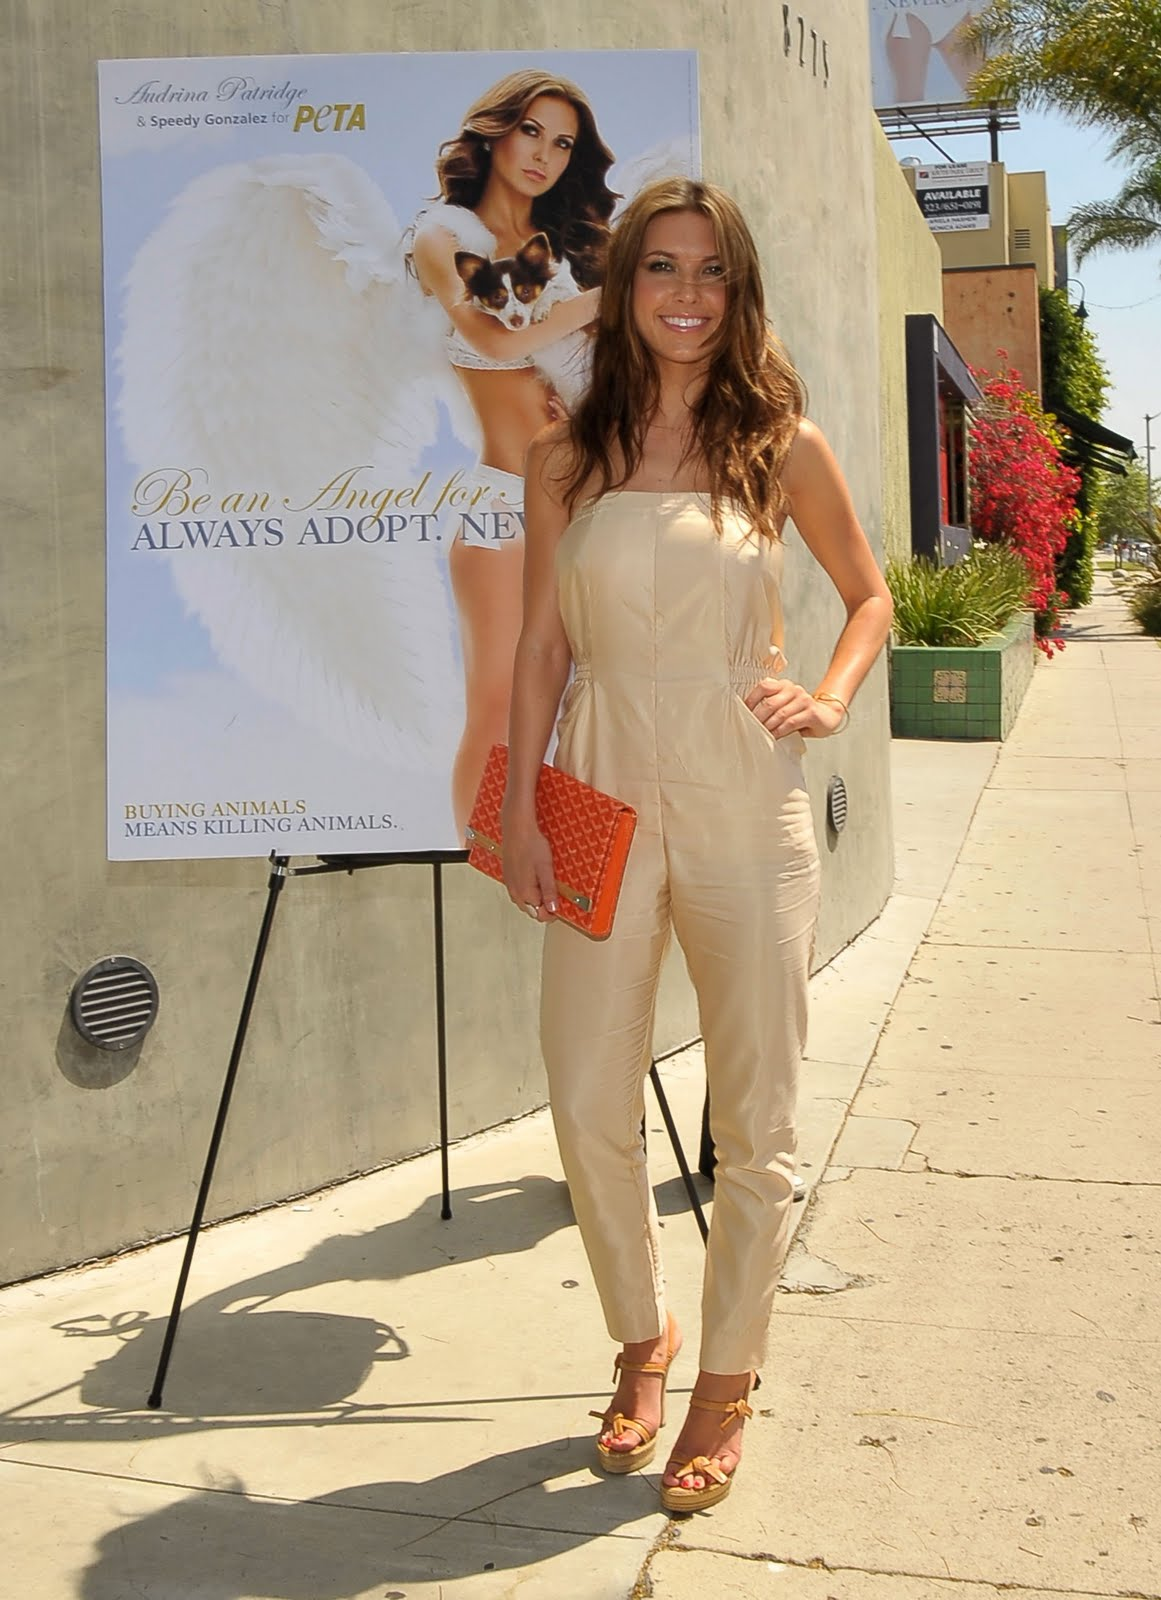 http://4.bp.blogspot.com/_pB39VNVB0Wk/S7Yxc4yk6OI/AAAAAAAADPg/6nOtYtWDPwI/s1600/39862_Celebutopia-Audrina_Patridge_unveils_her_new_billboard_for_PETA_in_Los_Angeles-april22.jpg